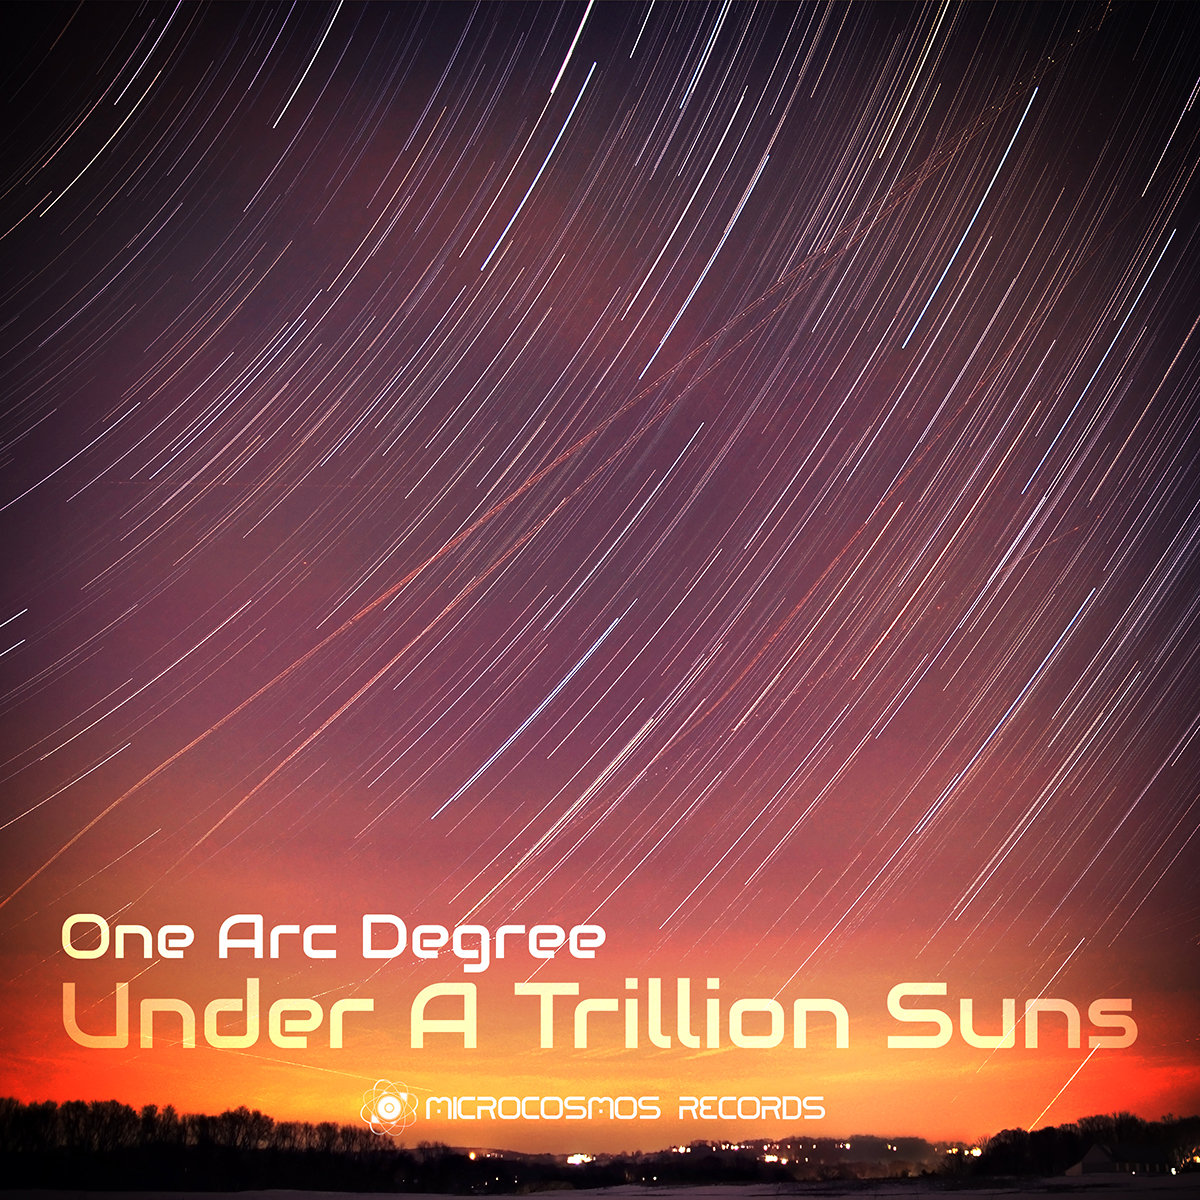 One Arc Degree - Under A Trillion Suns